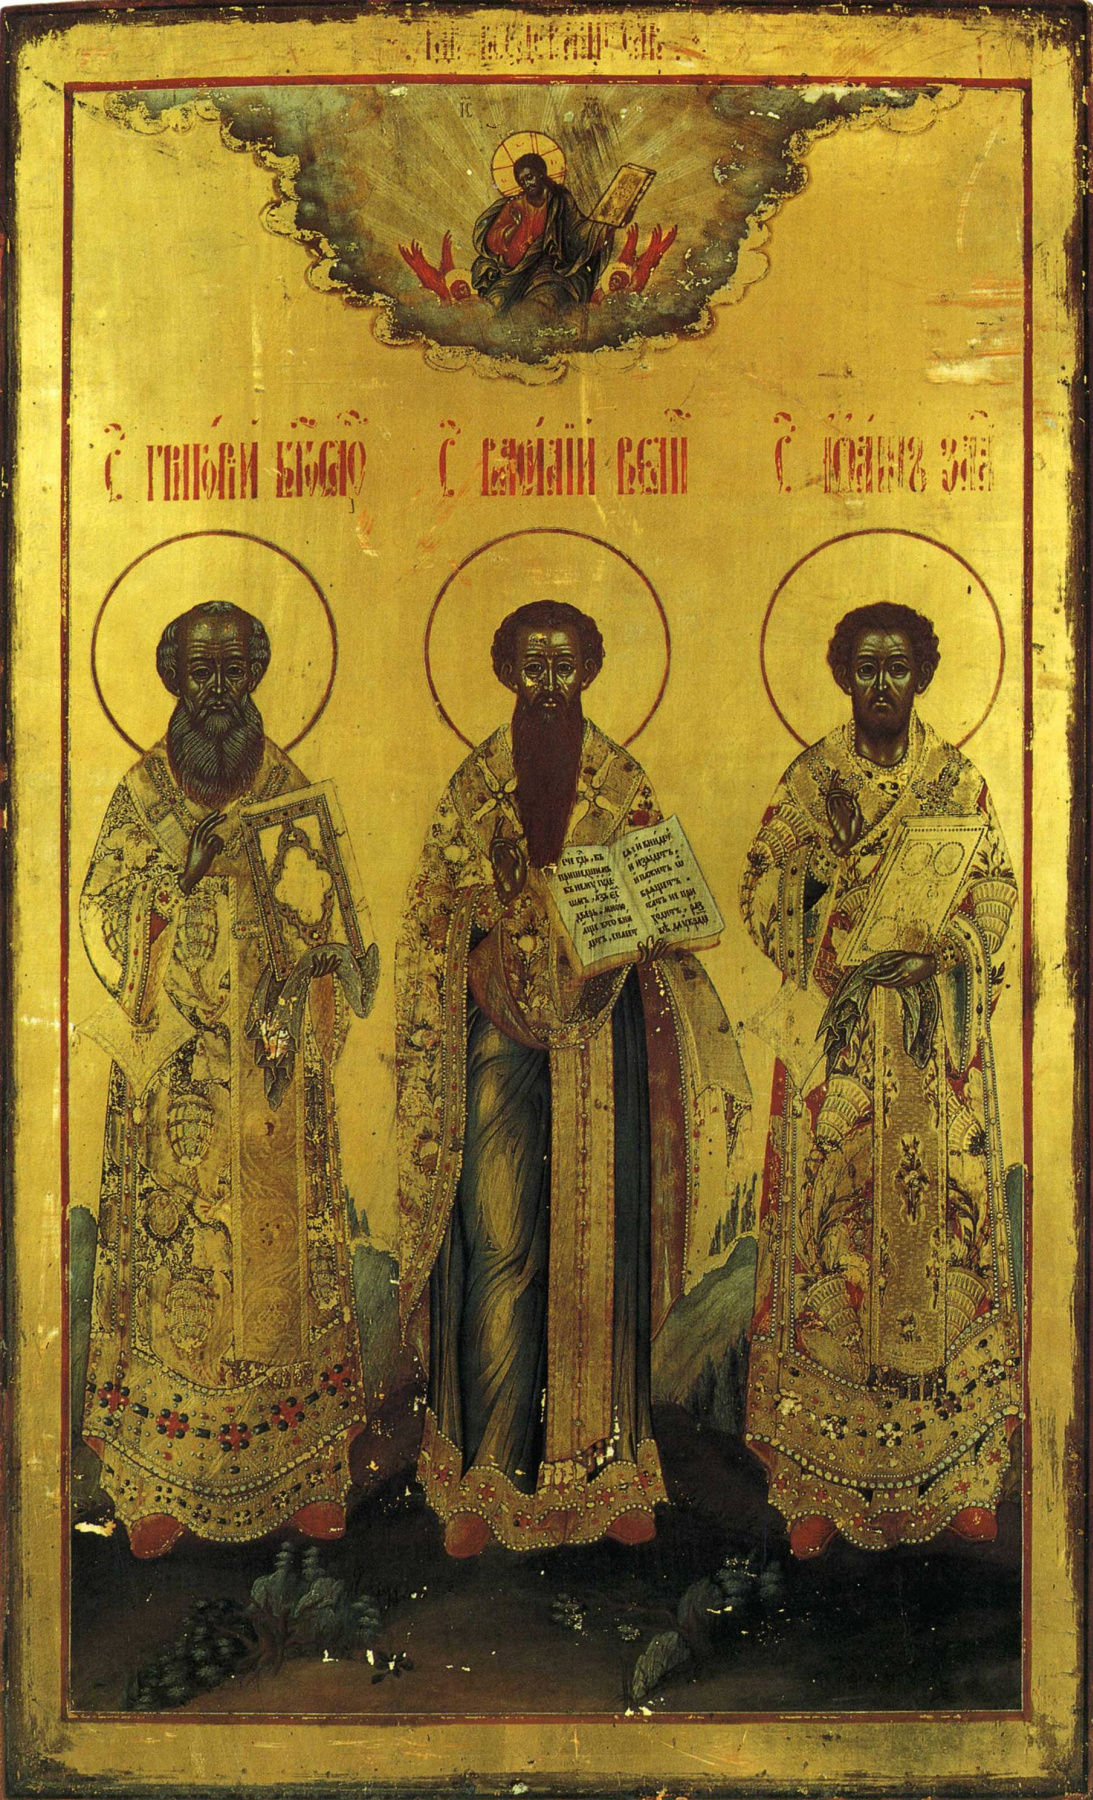 Icon Painting. Gregory the Theologian, Basil the Great, John Chrysostom (Nevyansk, Bogatyrev Workshop)